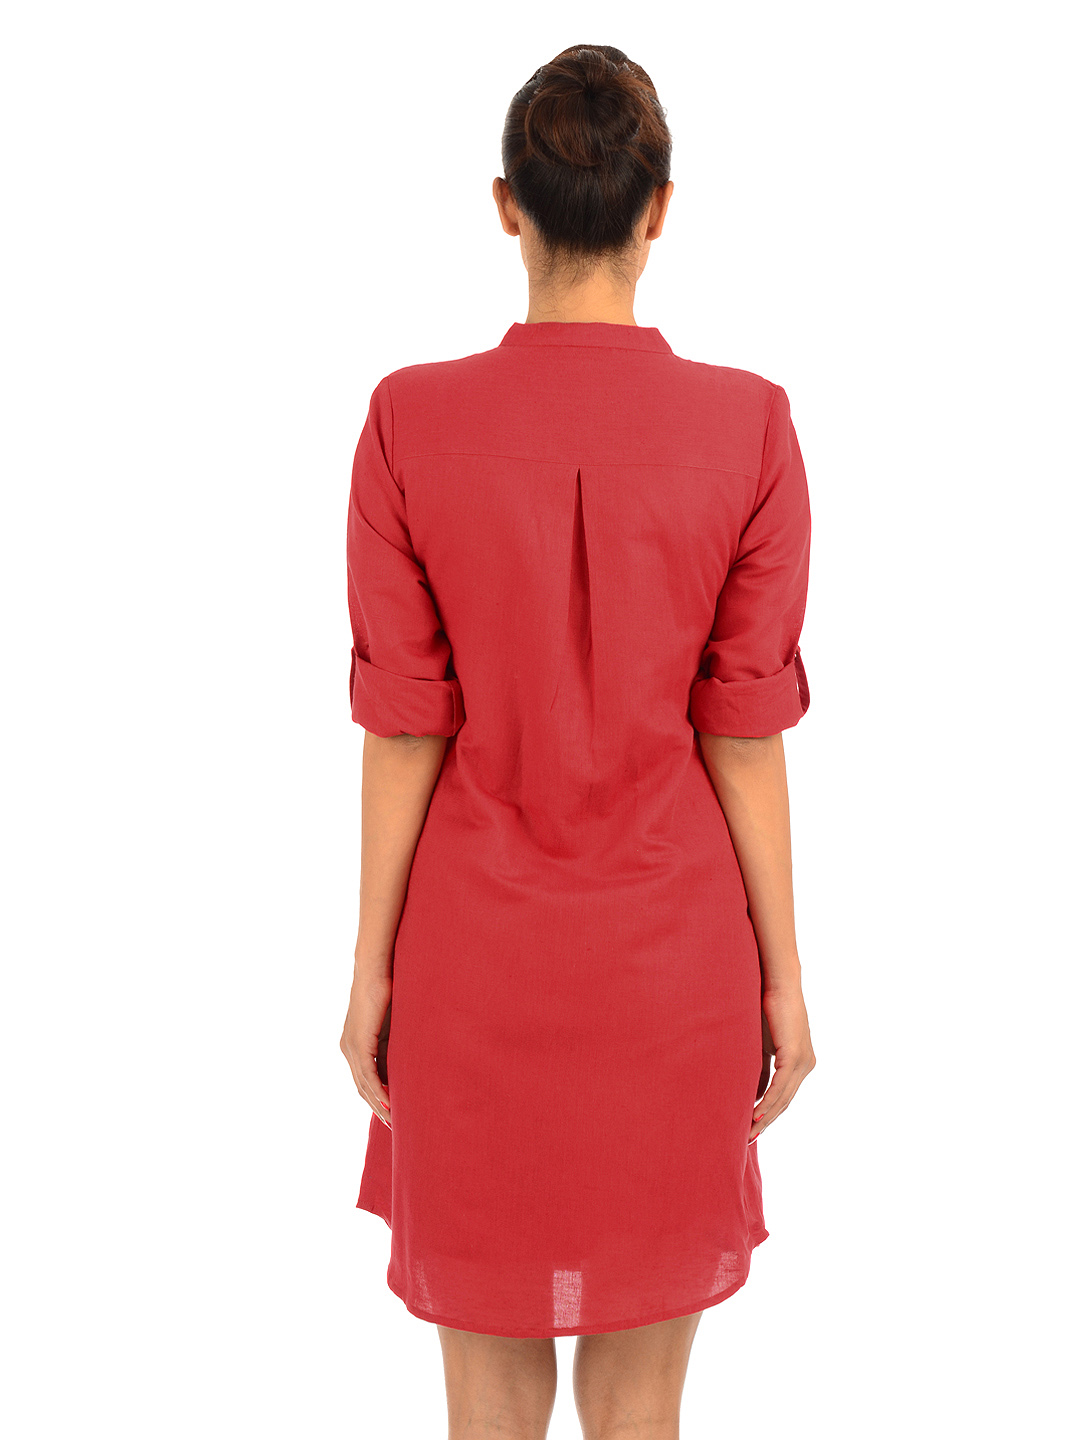 For Women Red Dress Shirts